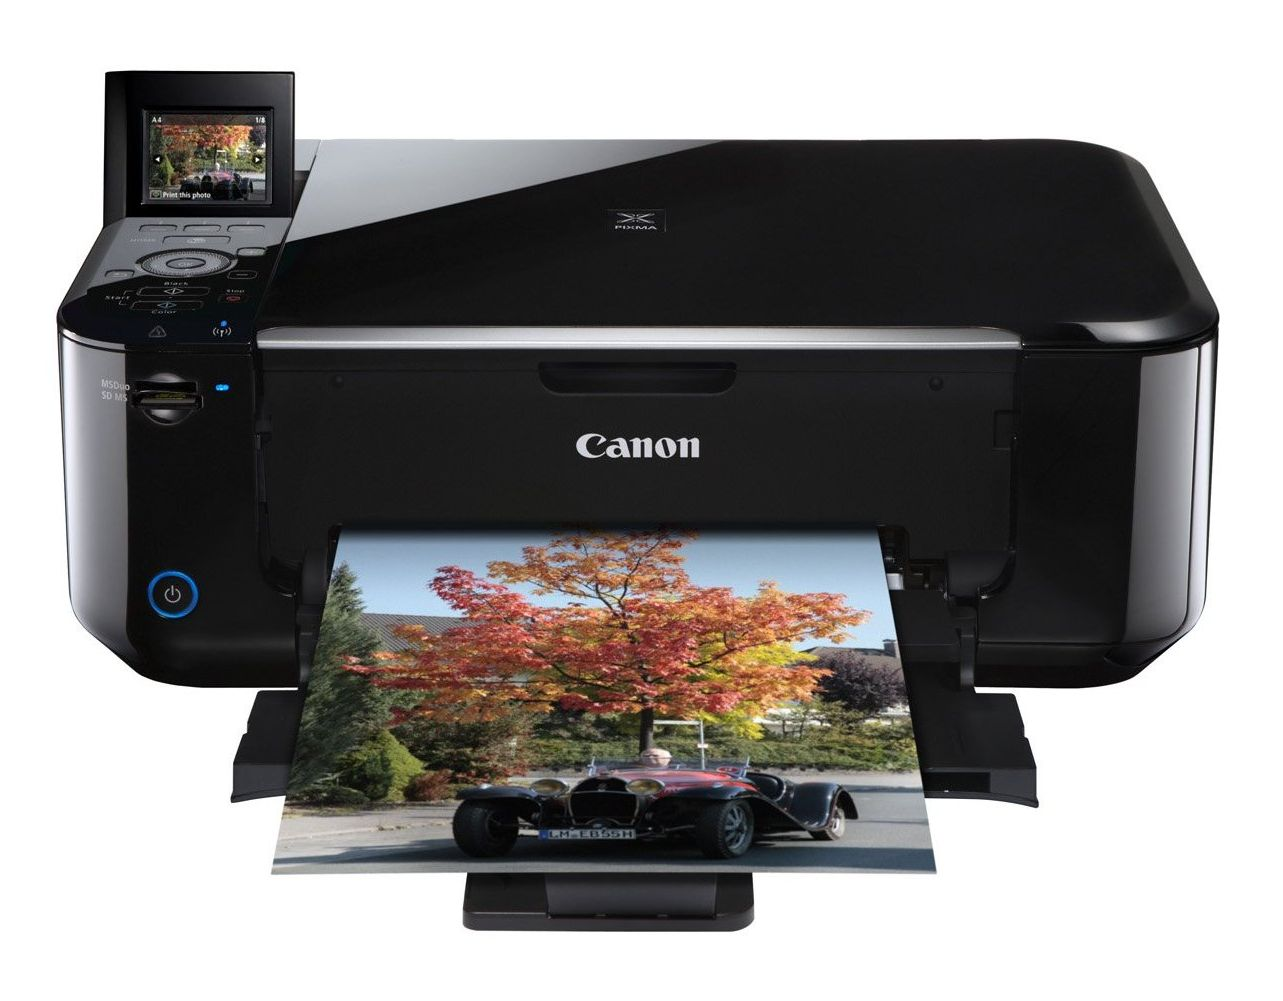 canon service center in madambakkam, canon printer service center in madambakkam